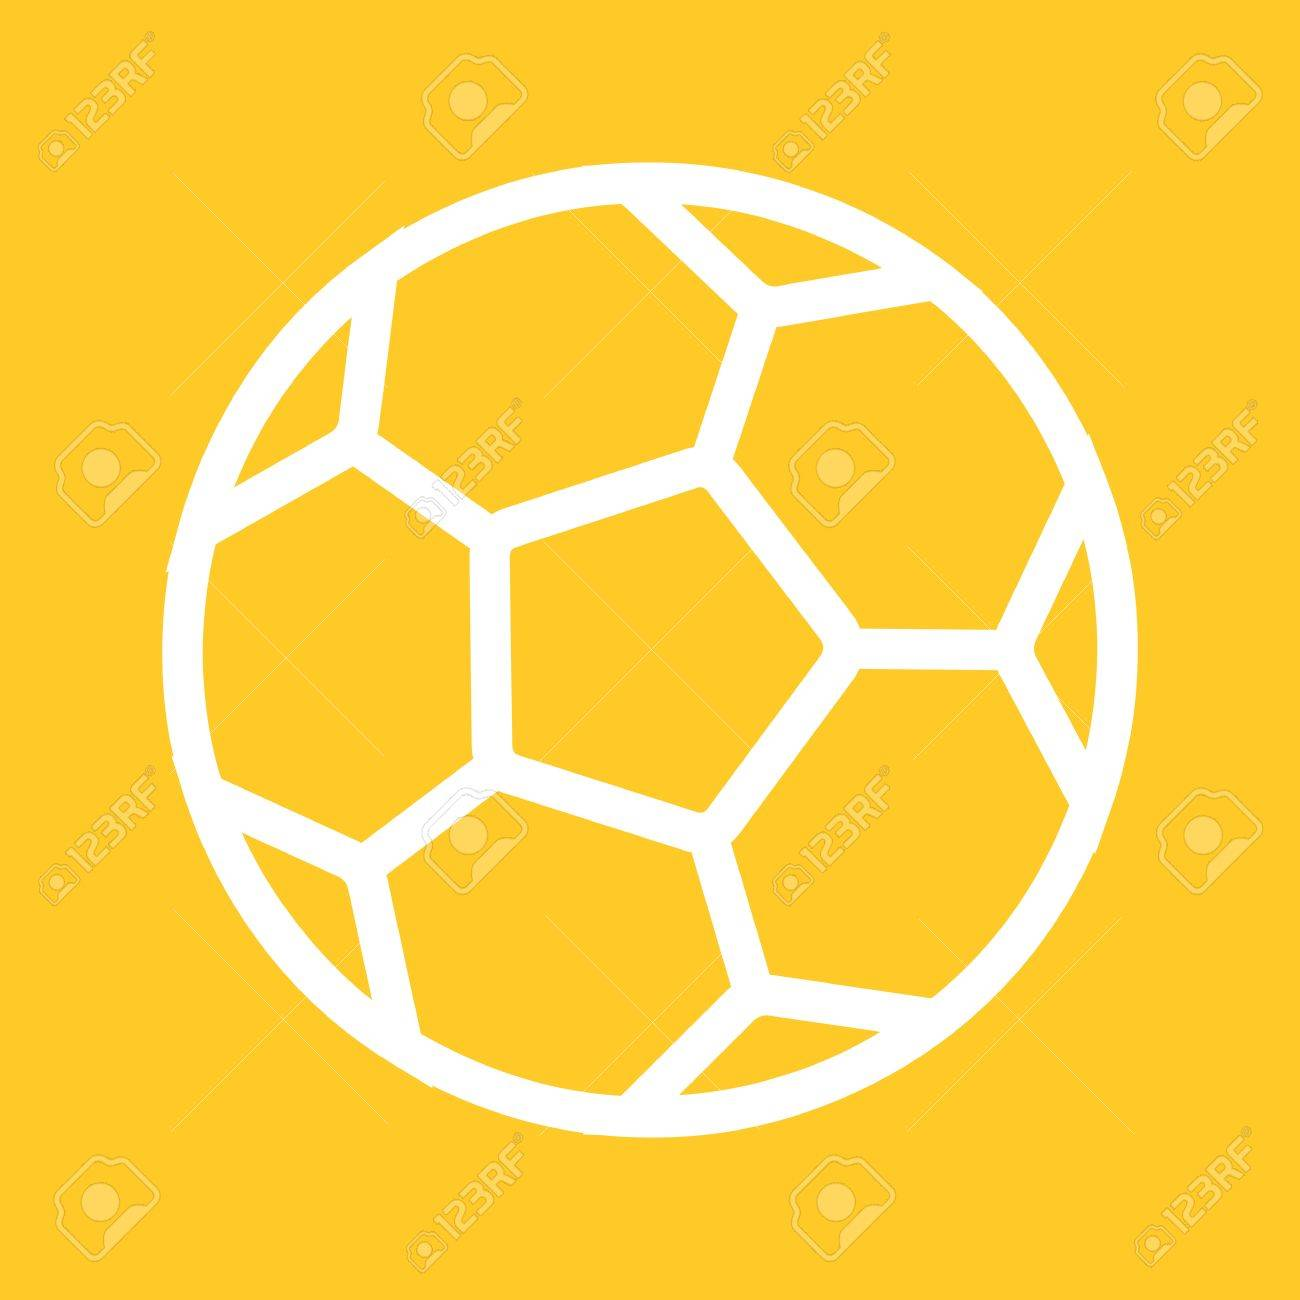 Football Ball Soccer Icon Vector Image Can Also Be Used For